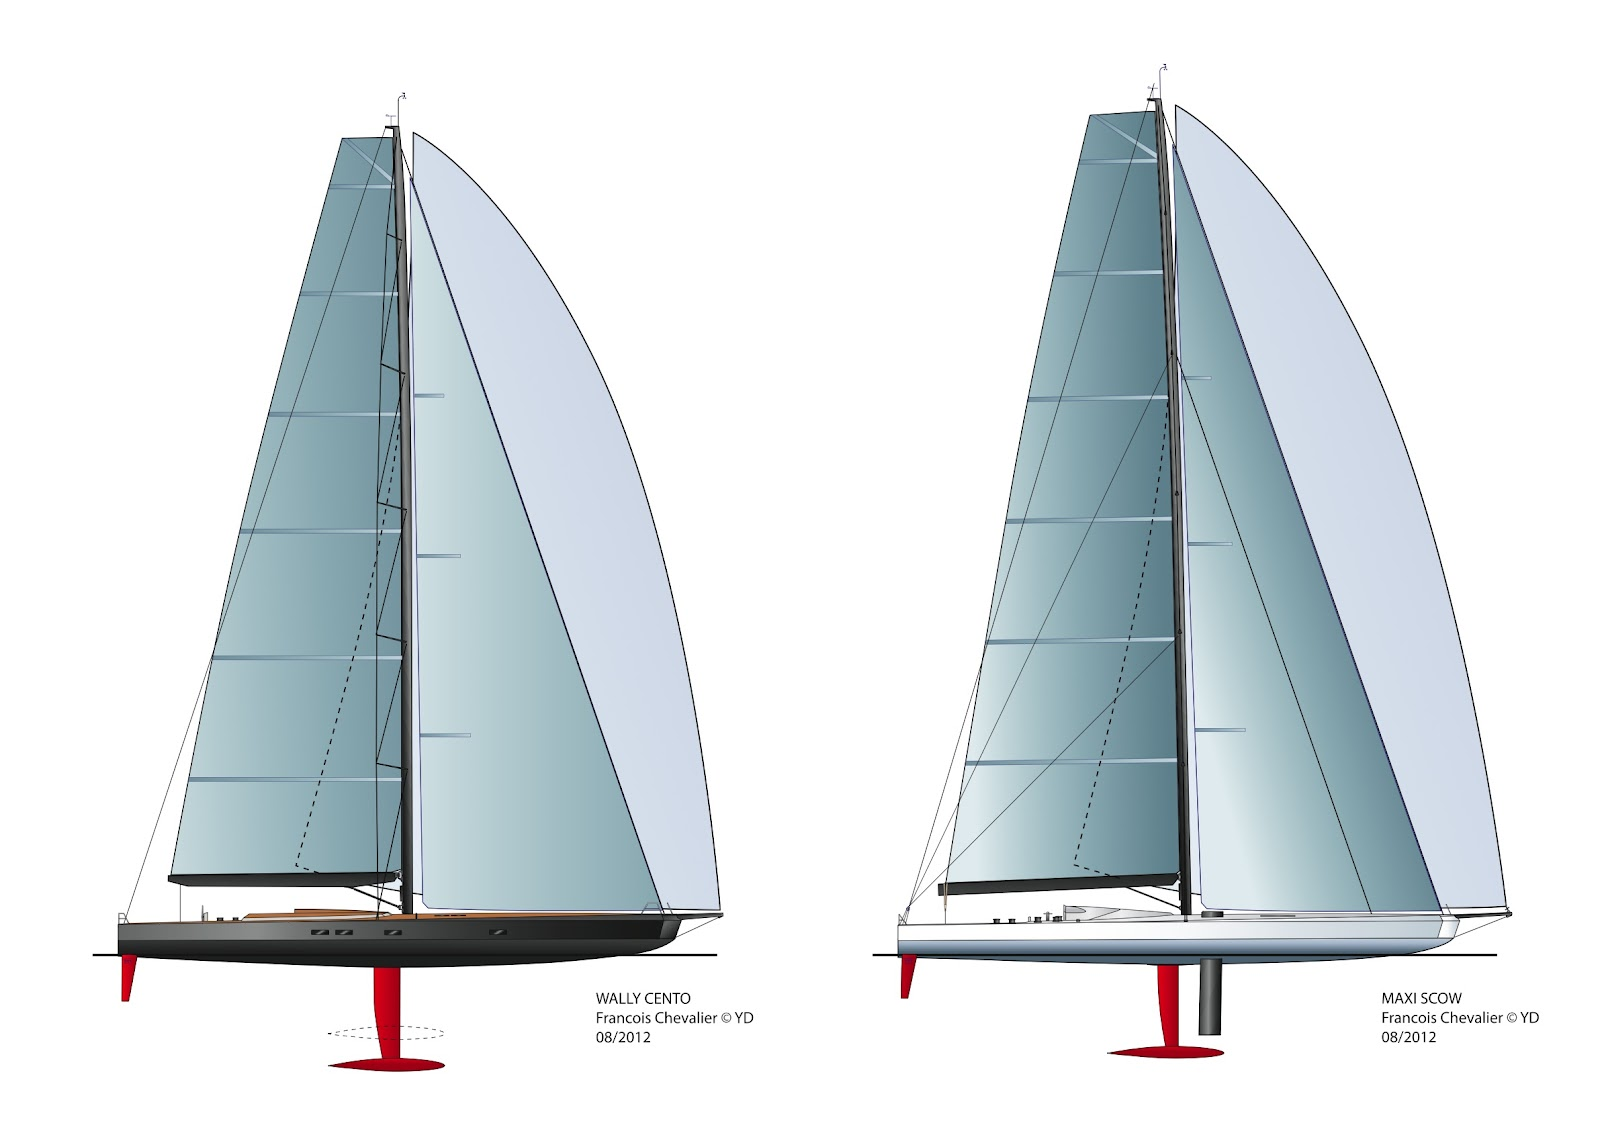 Project plan for whitbread sailboat race